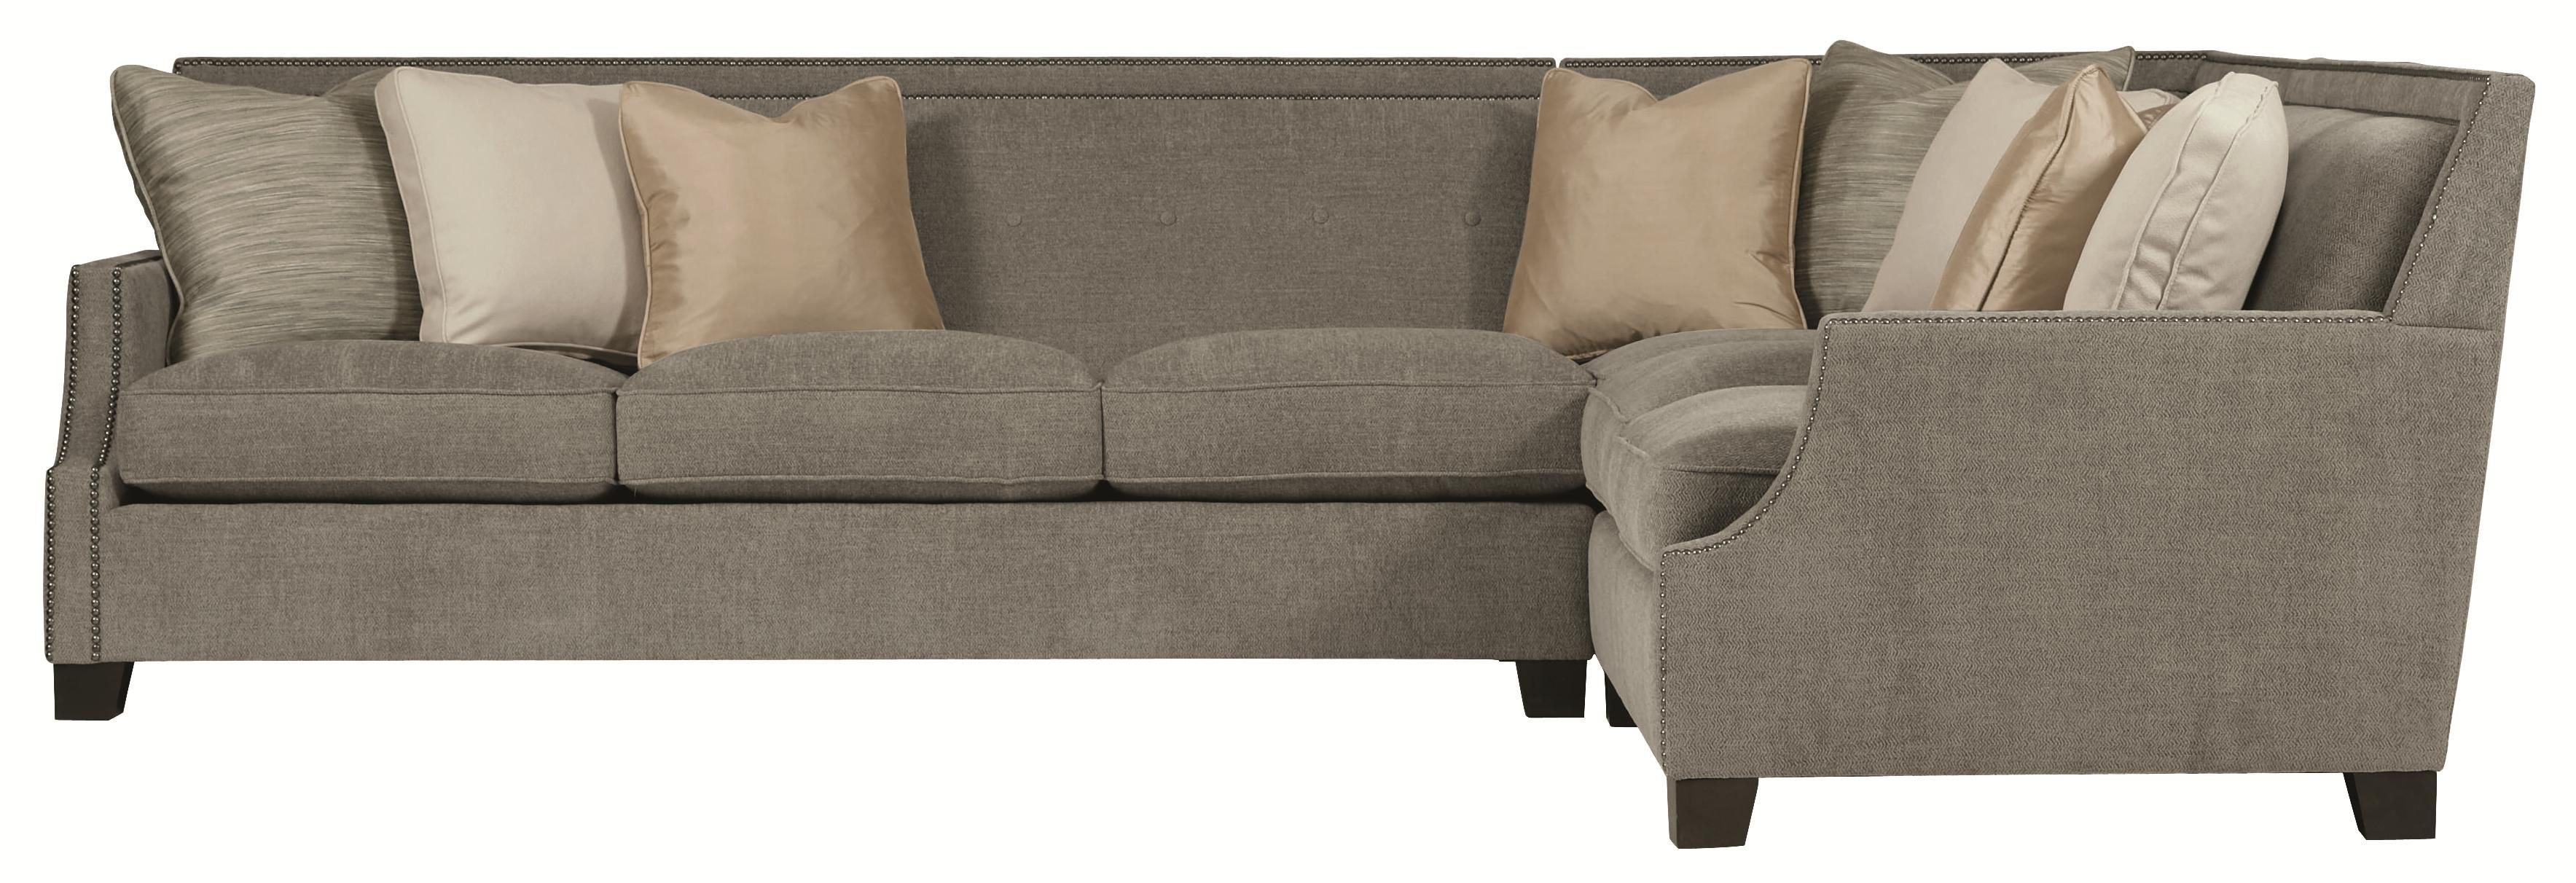 Sectional Sofa By Bernhardt